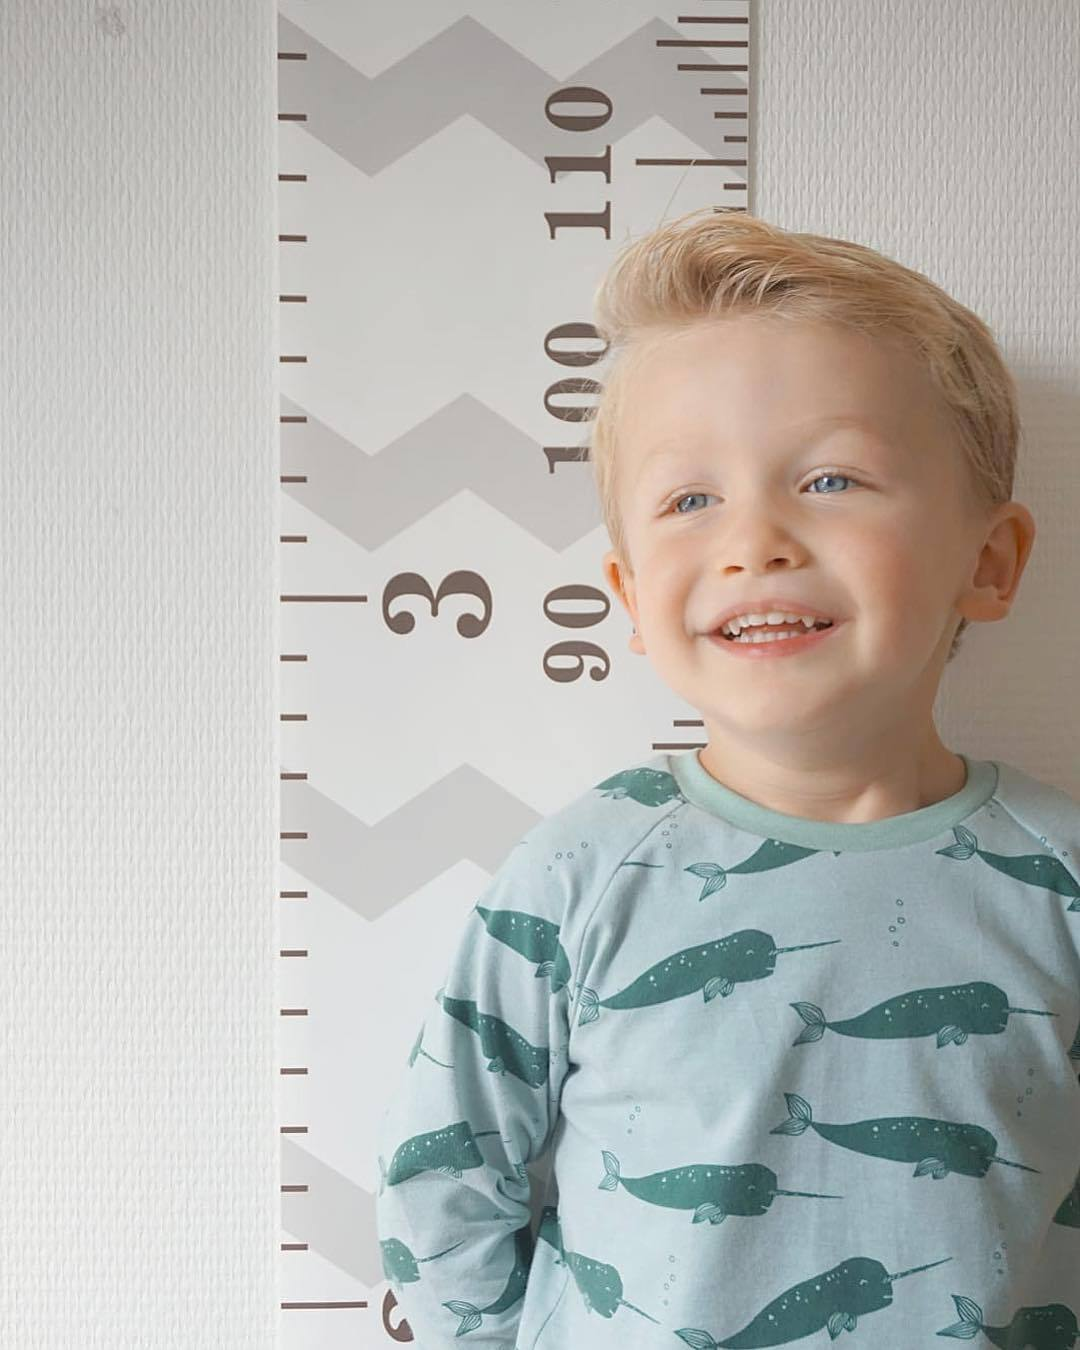 Creative Wall-Adhesive Growth Ruler for Children's Rooms